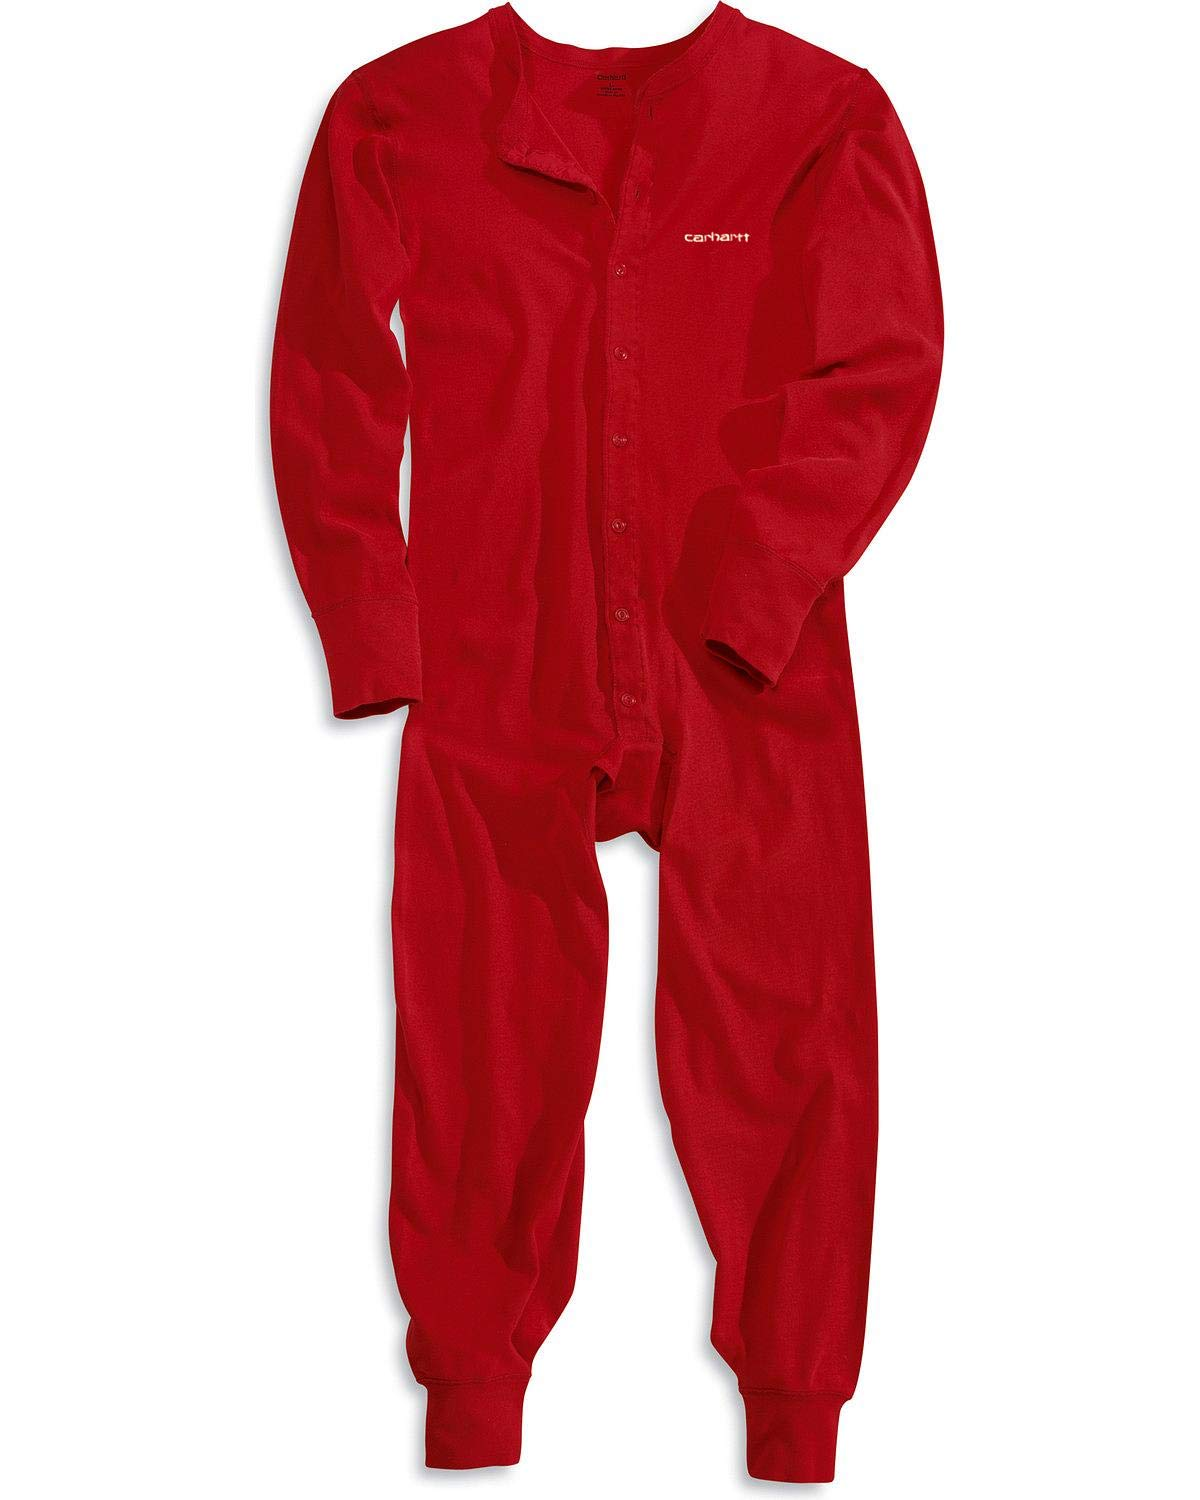 Base Force Classic Thermal Base Layer Union Suit by Carhartt